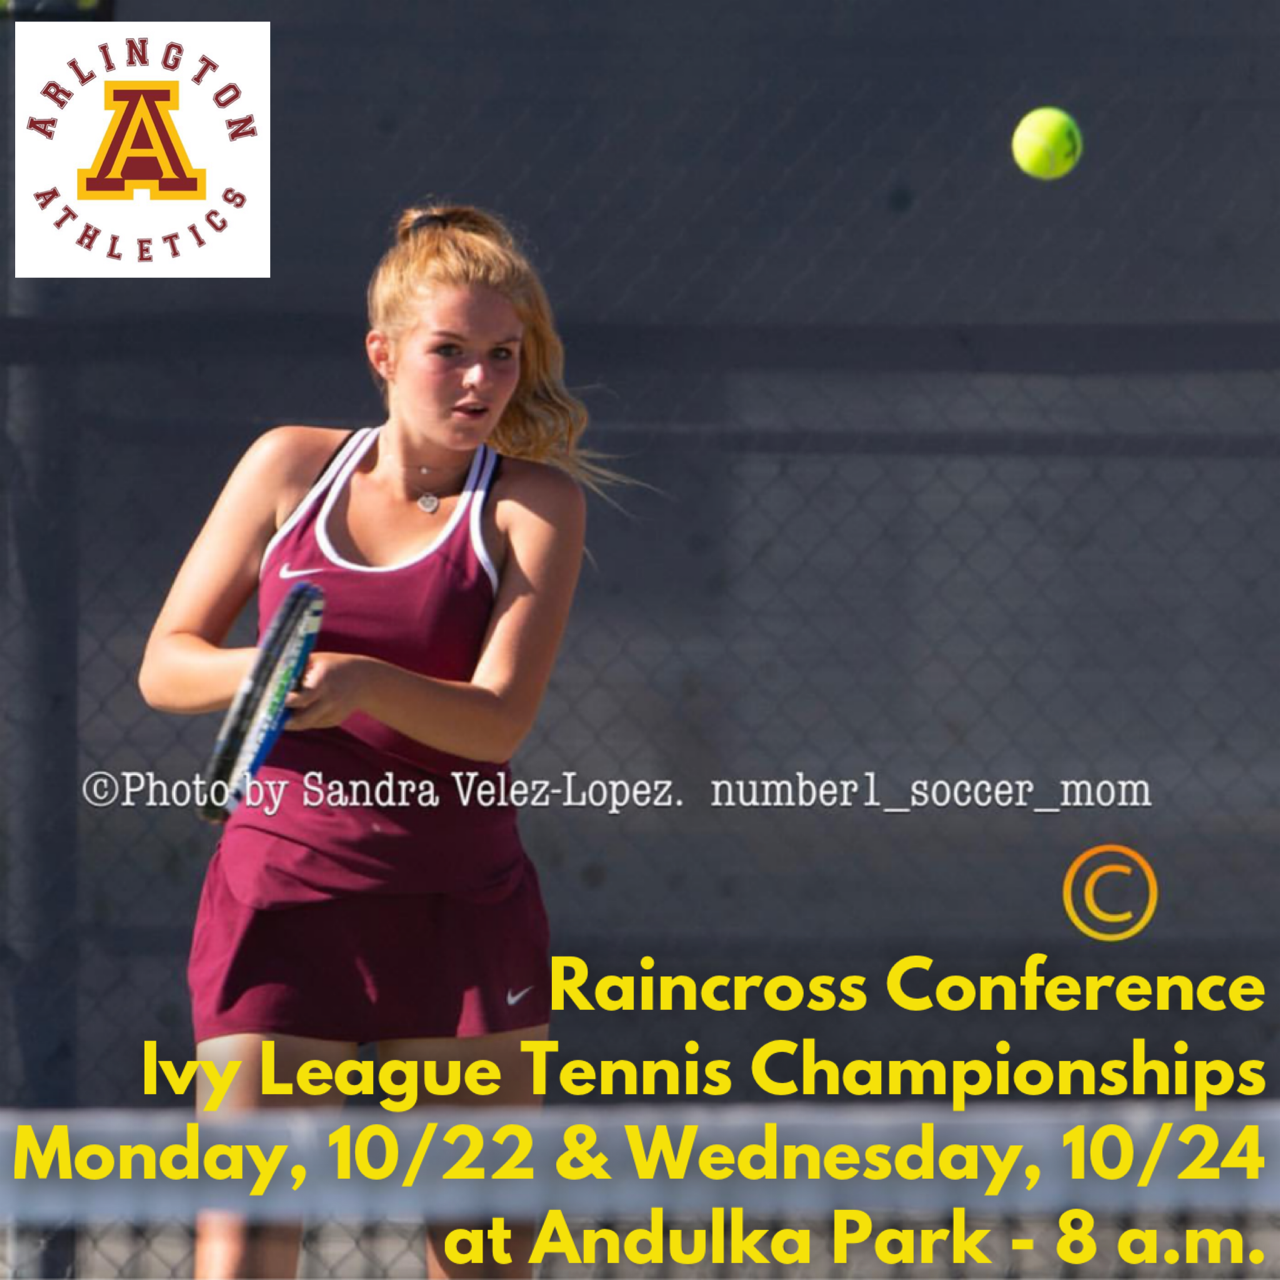 Monday, 10/22/18: Ivy League Tennis Prelims at Andulka Park – 8 a.m.